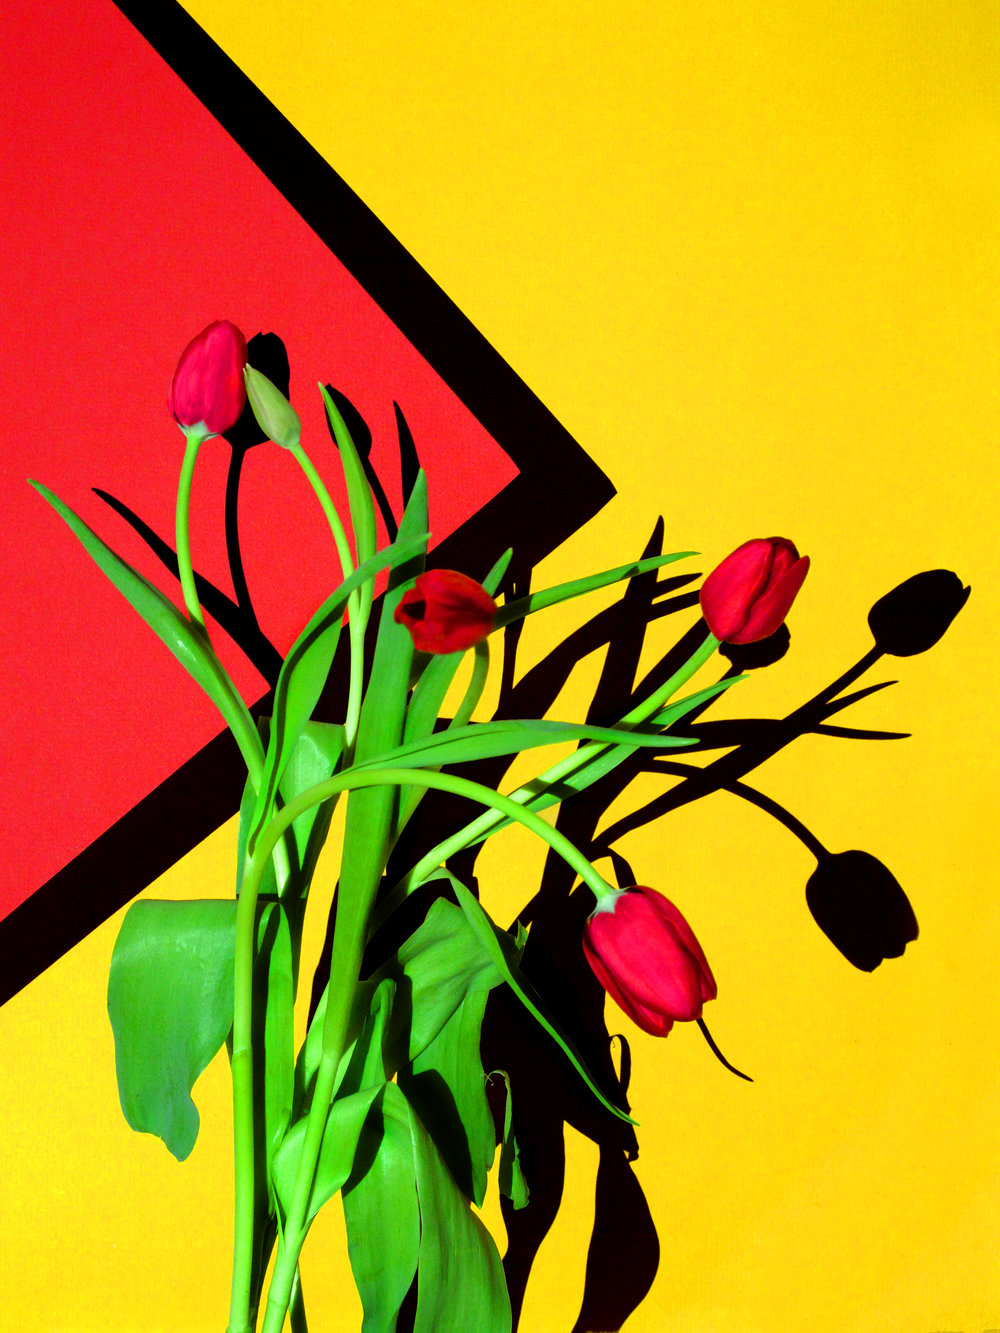 16x20_red_yellow_tulips.jpg